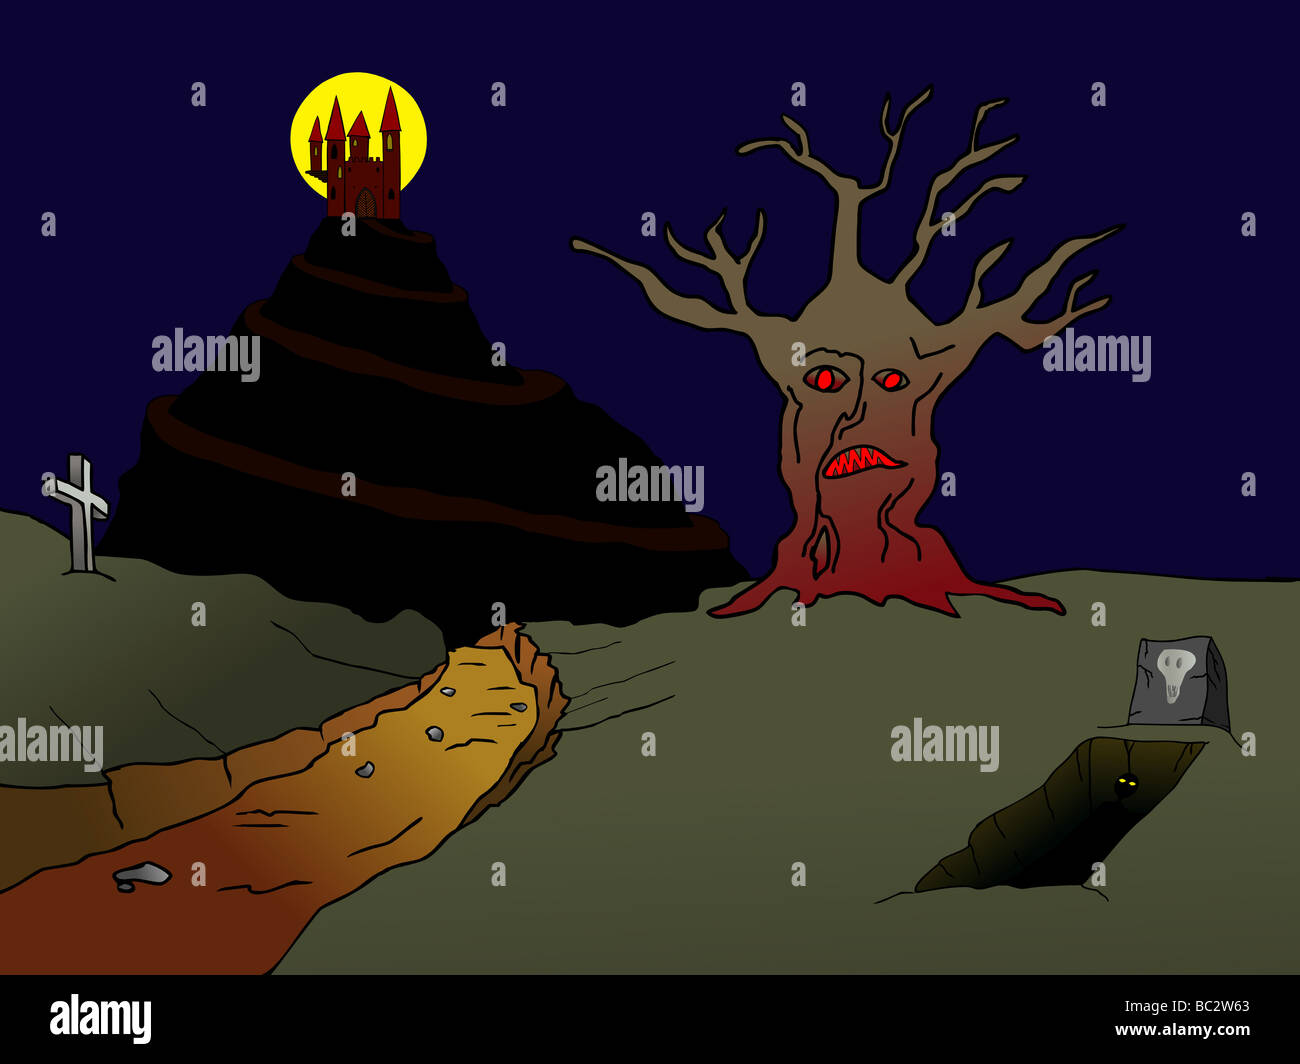 Illustration of the old haunted castle on the hill and incubus rising from the grove - Stock Image